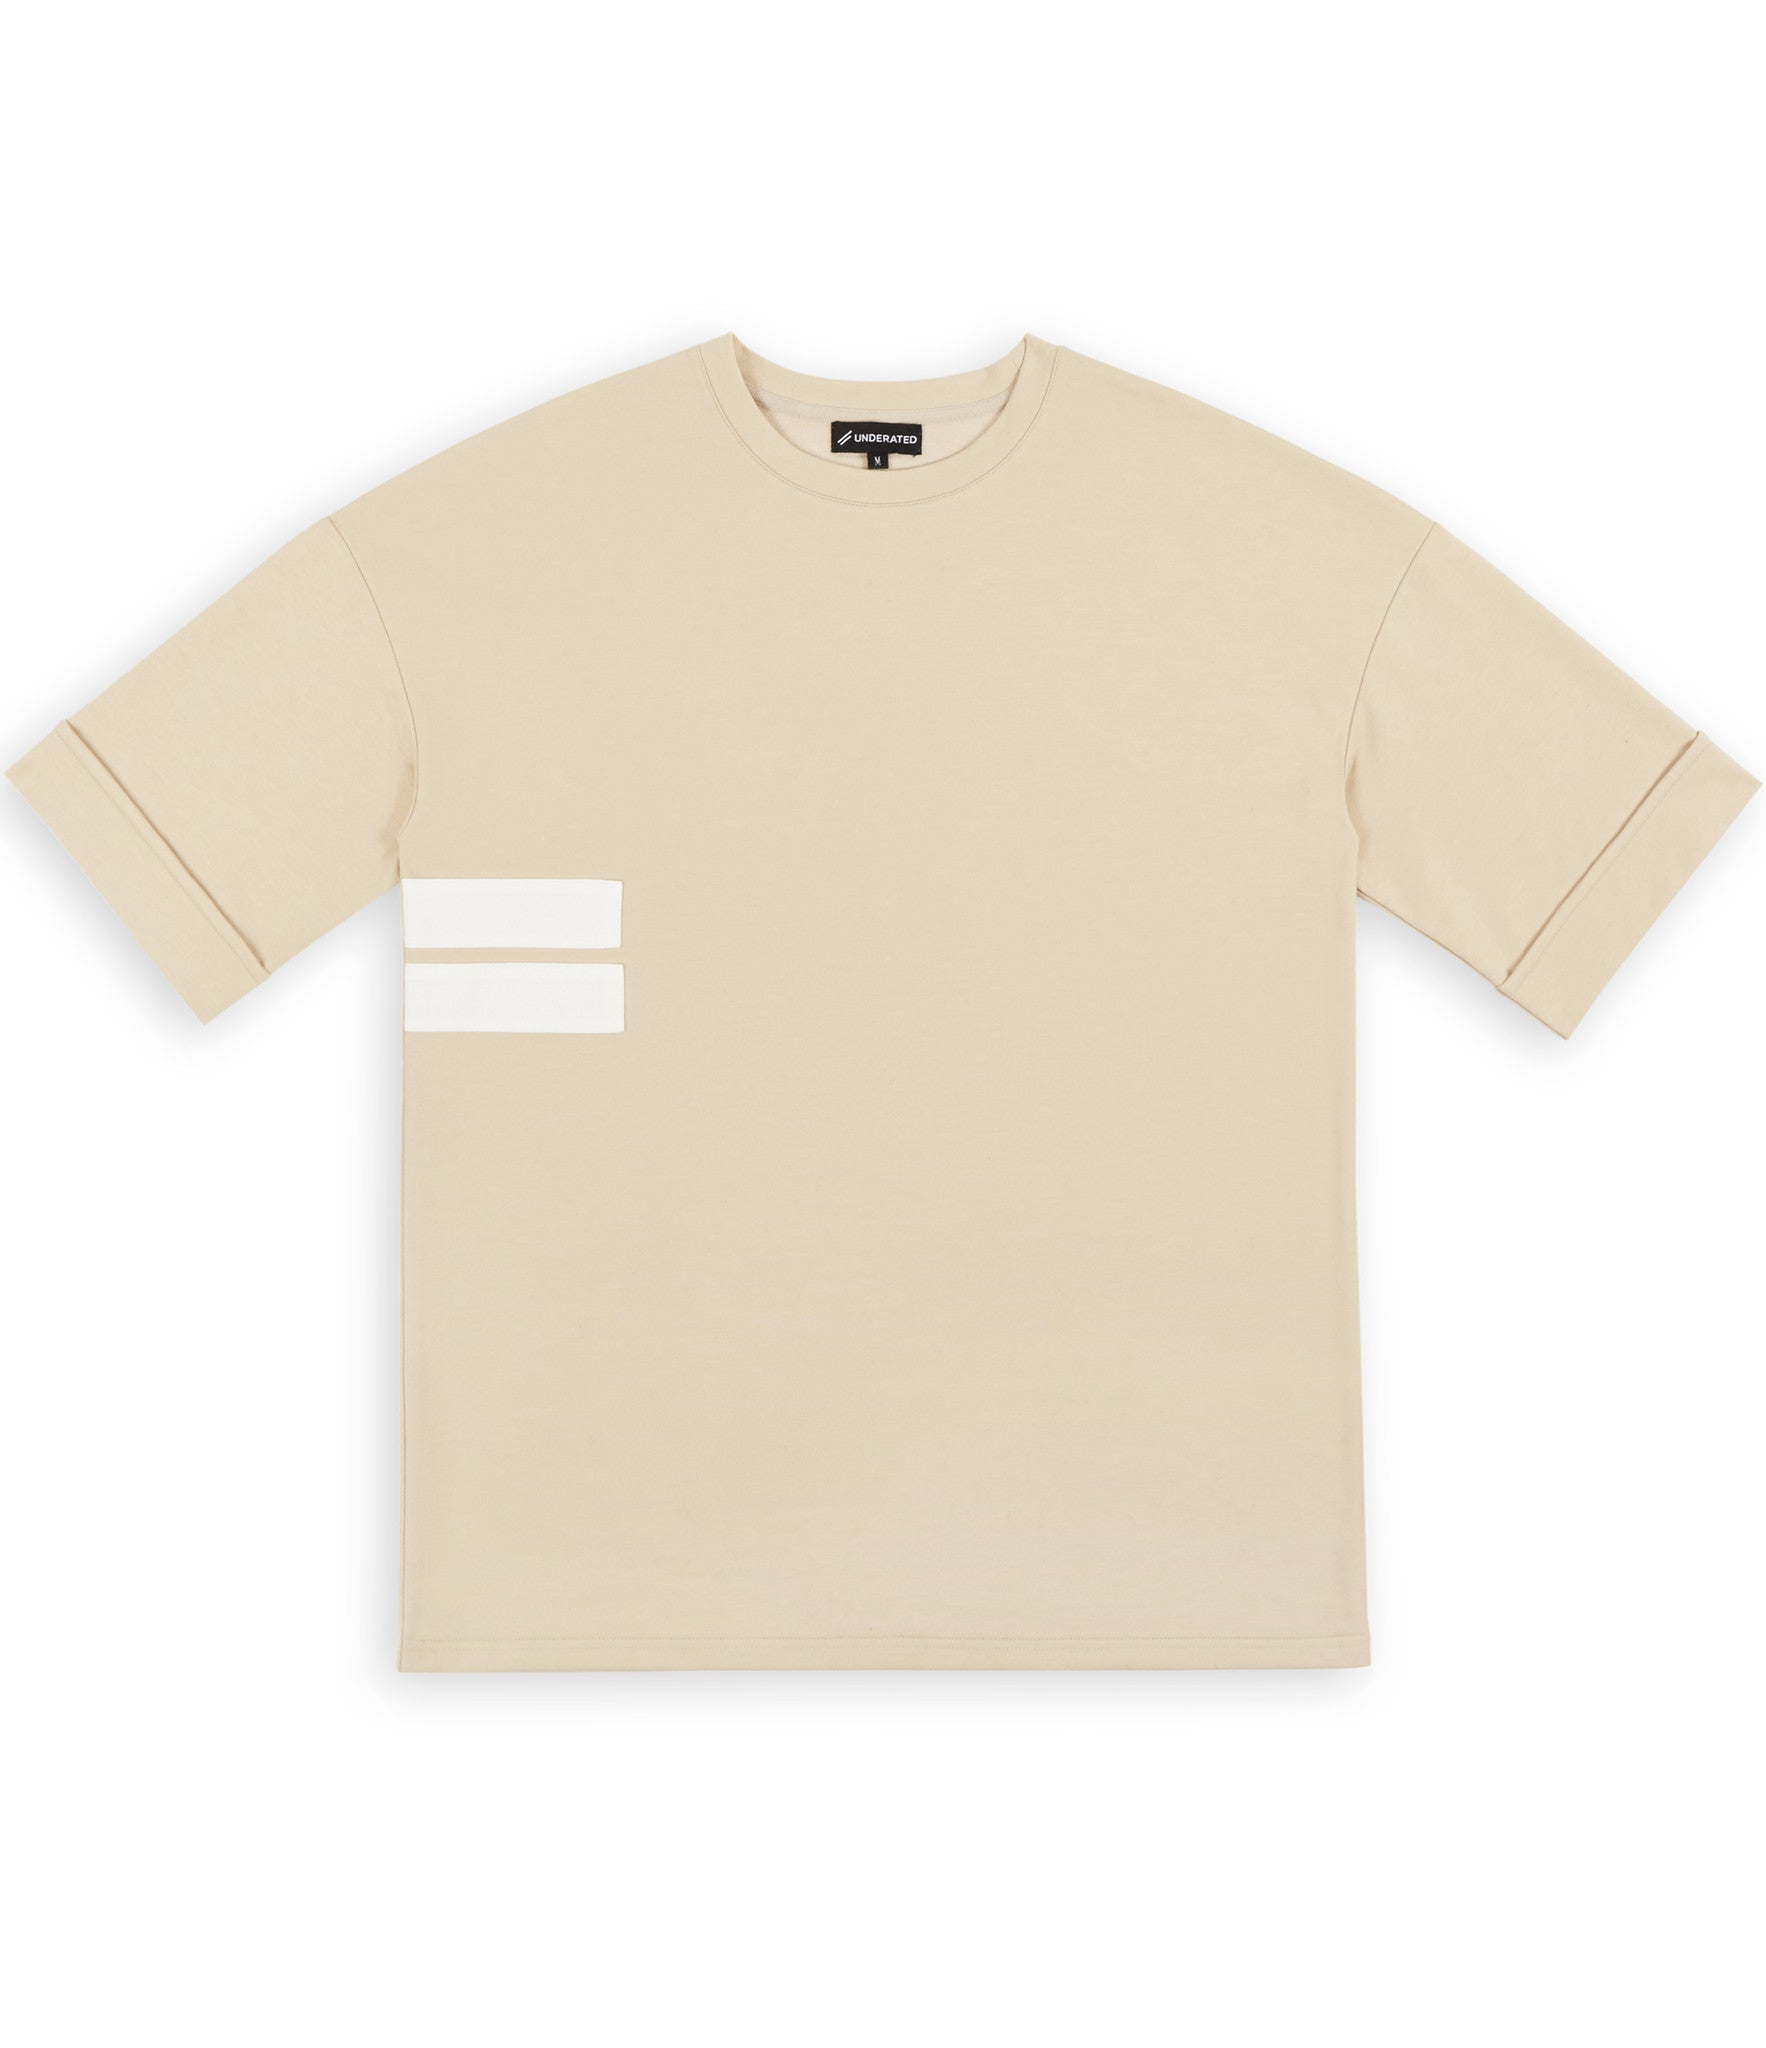 TS271 Oversized Tee - Beige - underated london - underatedco - 2